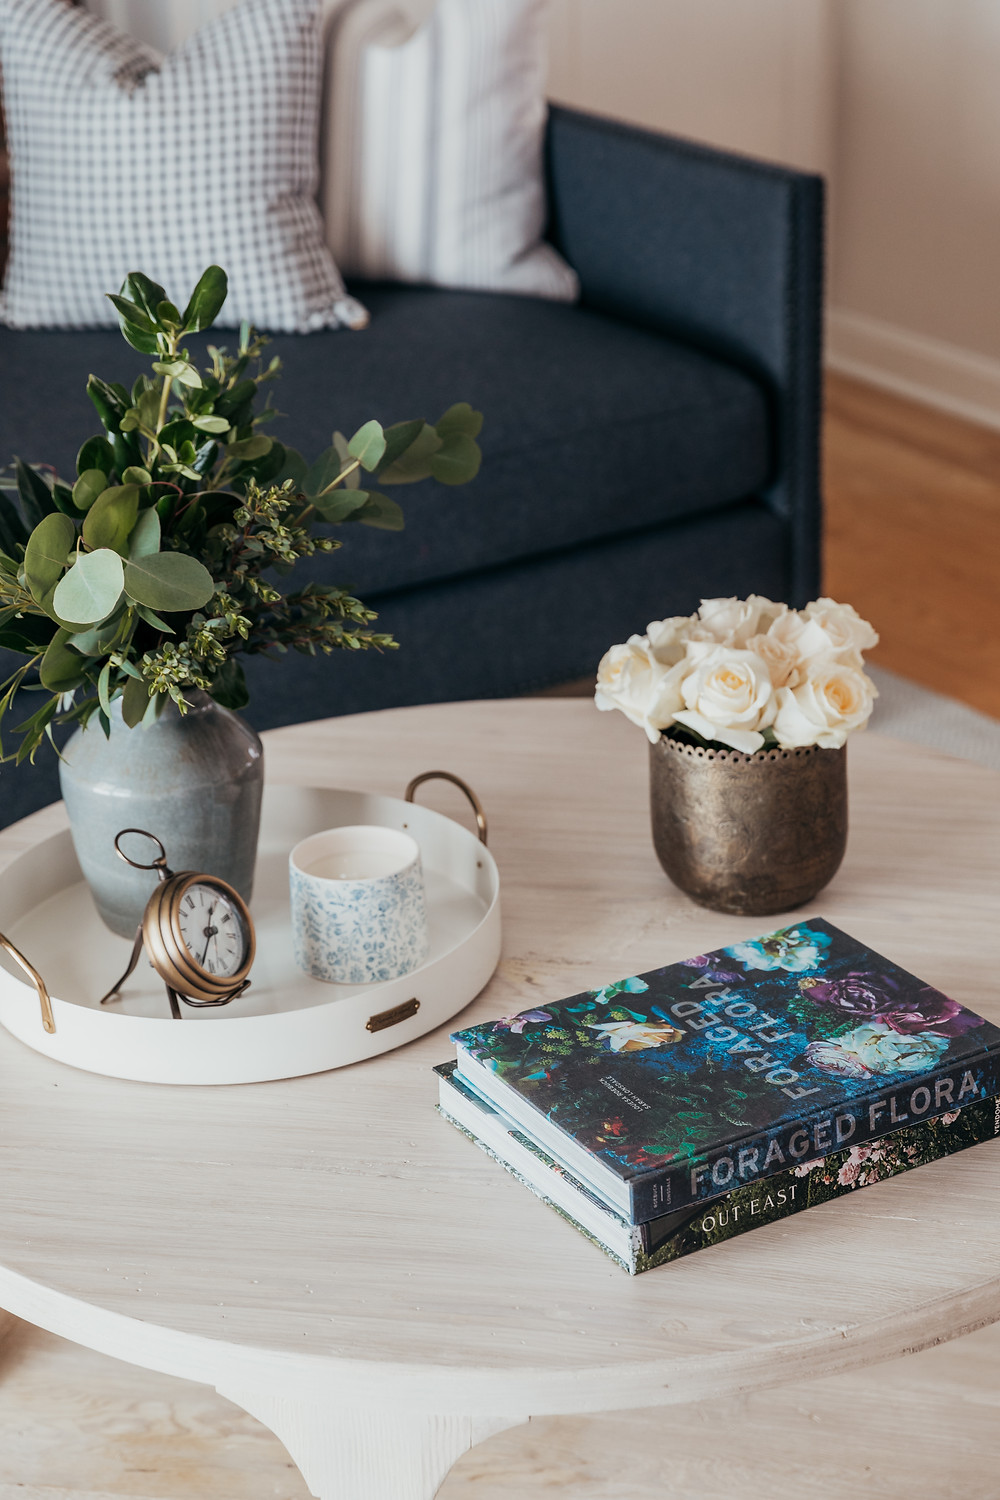 Coffee table styling by Christine McCall Home, a Pittsburgh based interior designer